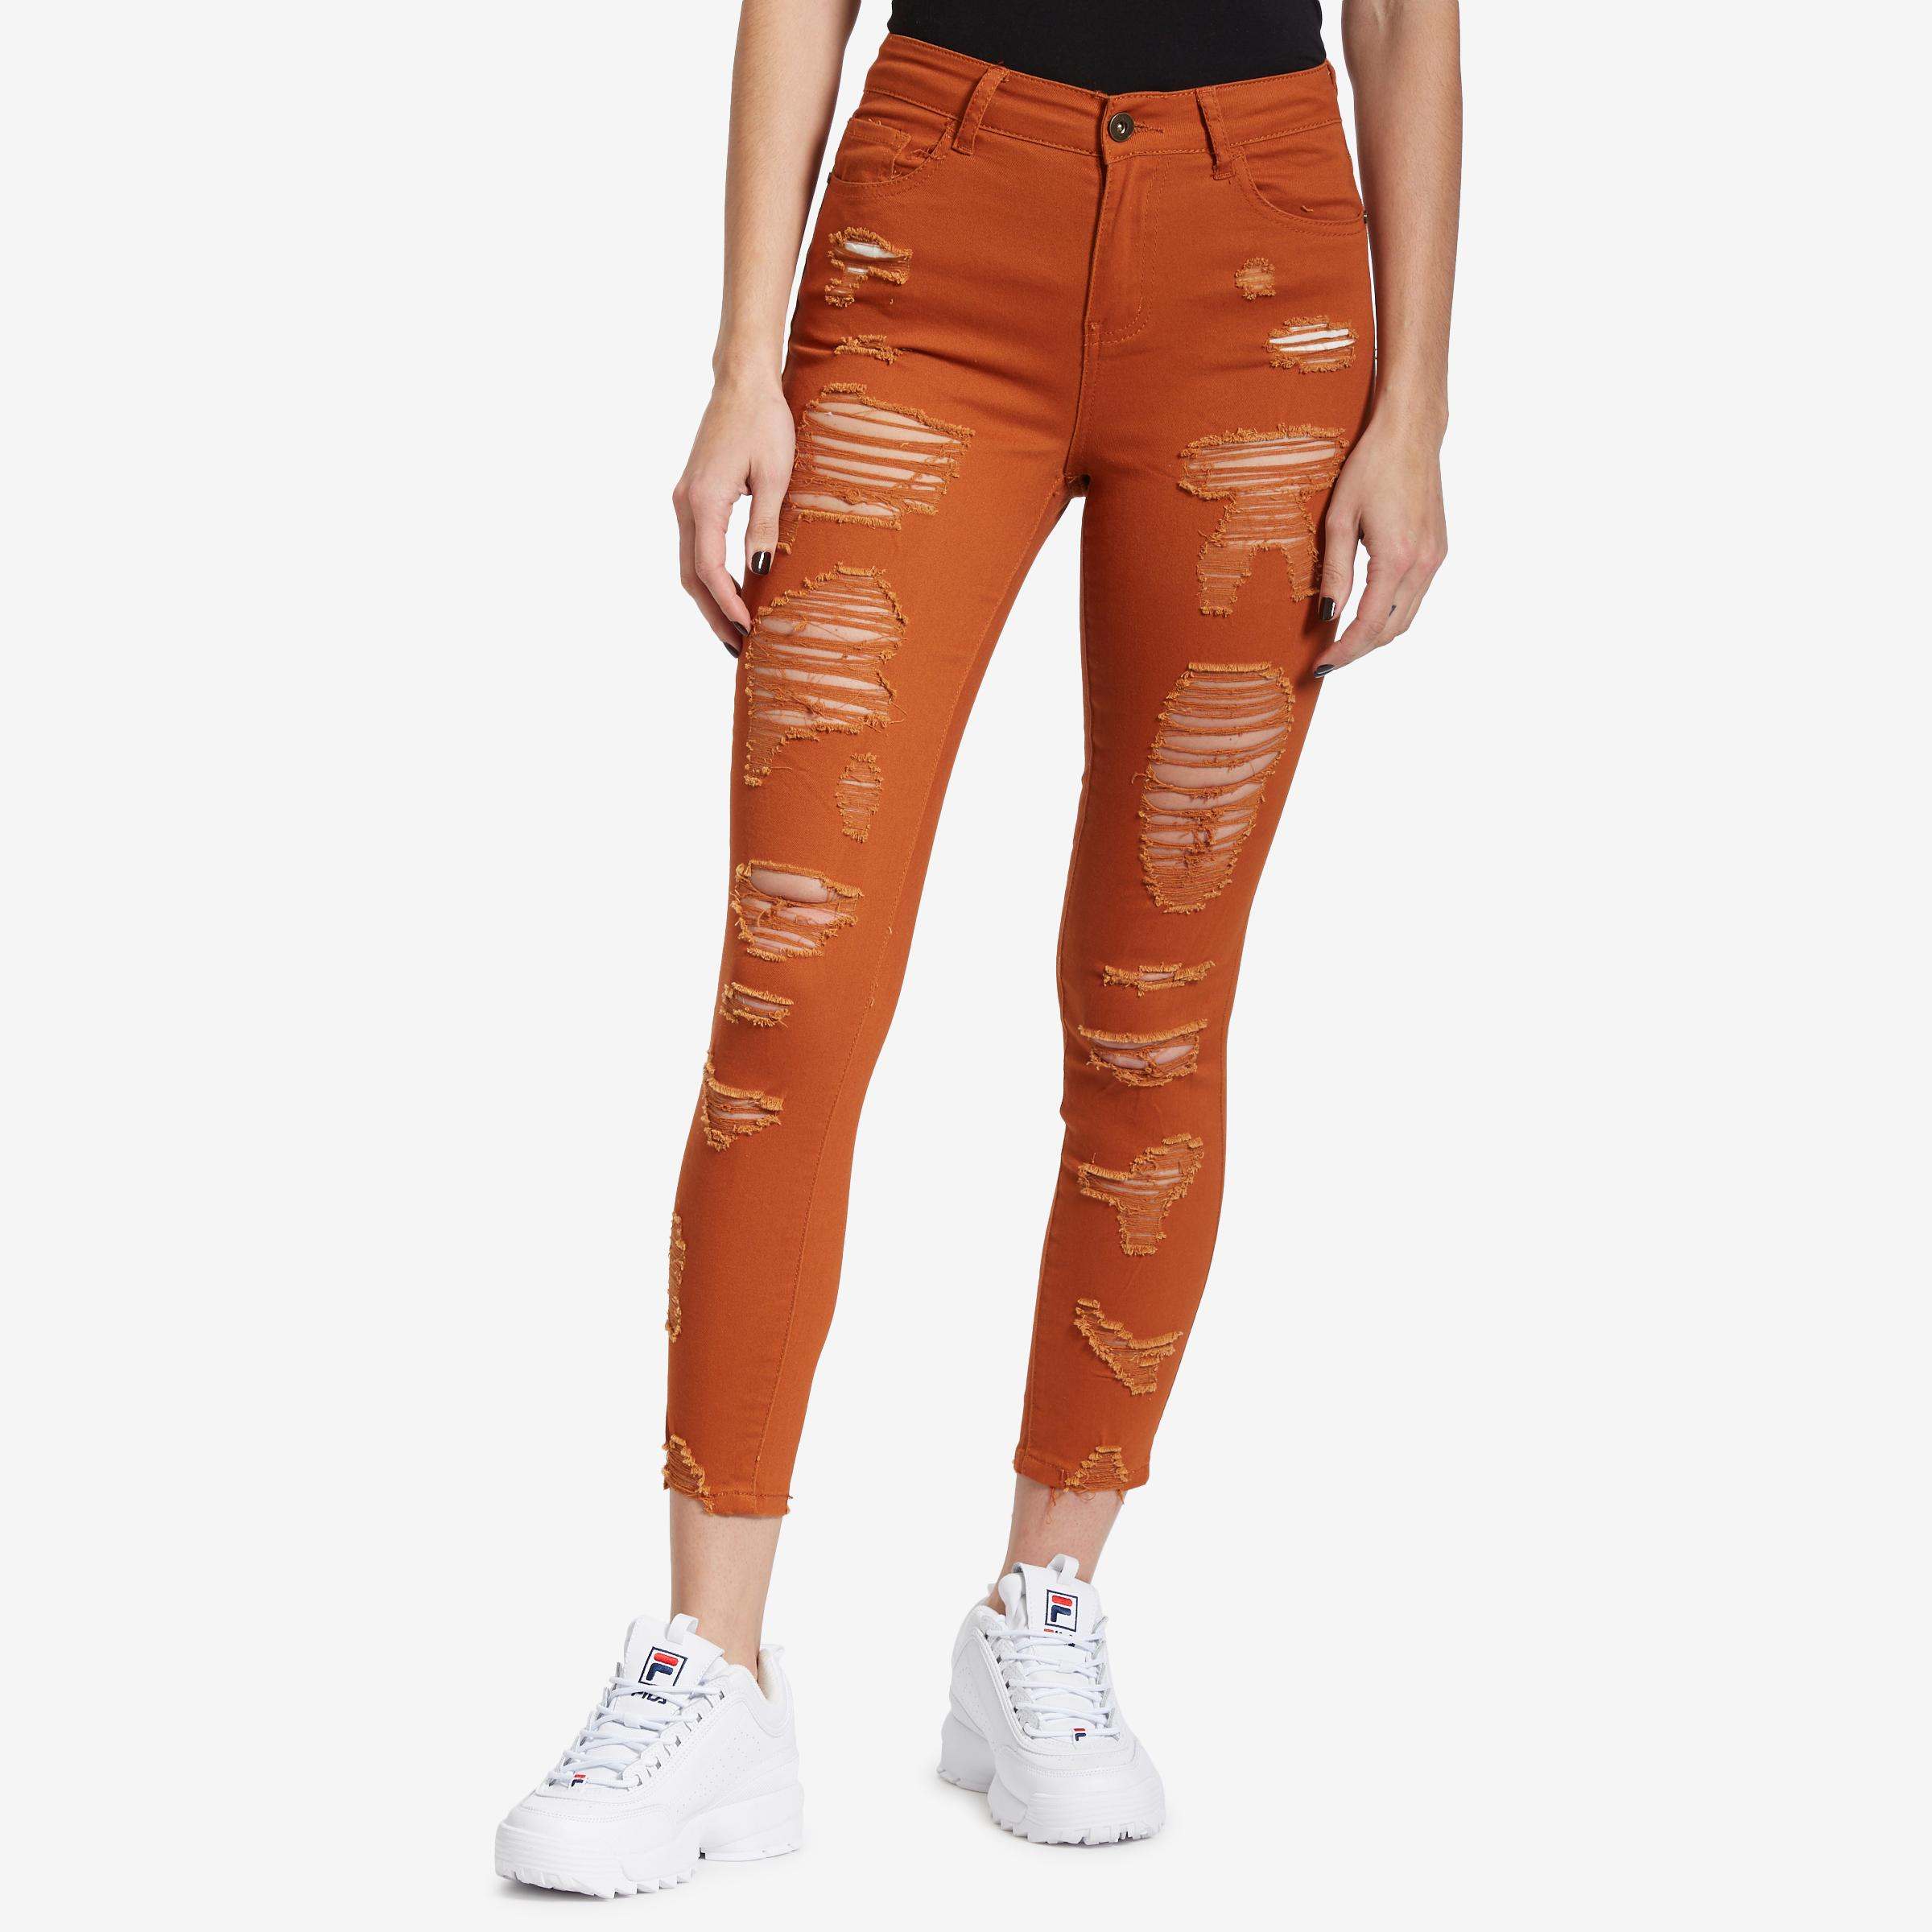 Women's Distressed Jeans